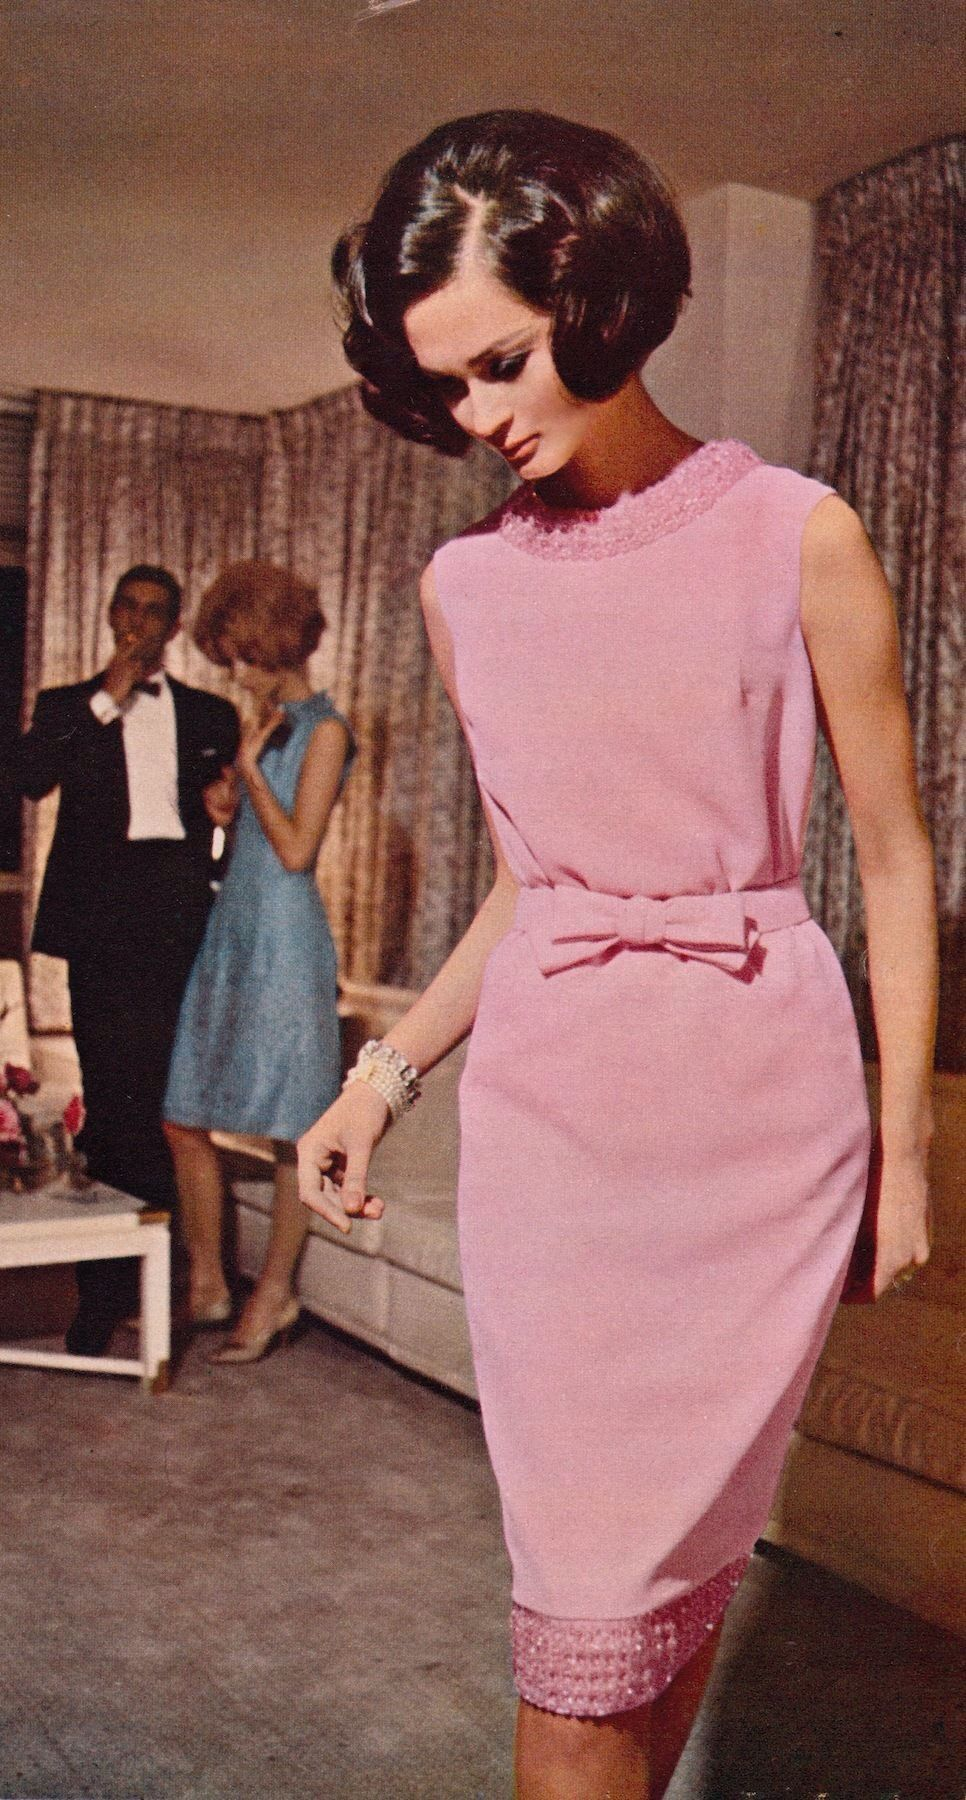 1965 cocktail party fashion the happy housewife pinterest party fashion 1960s and 1960s Style me pink fashion show